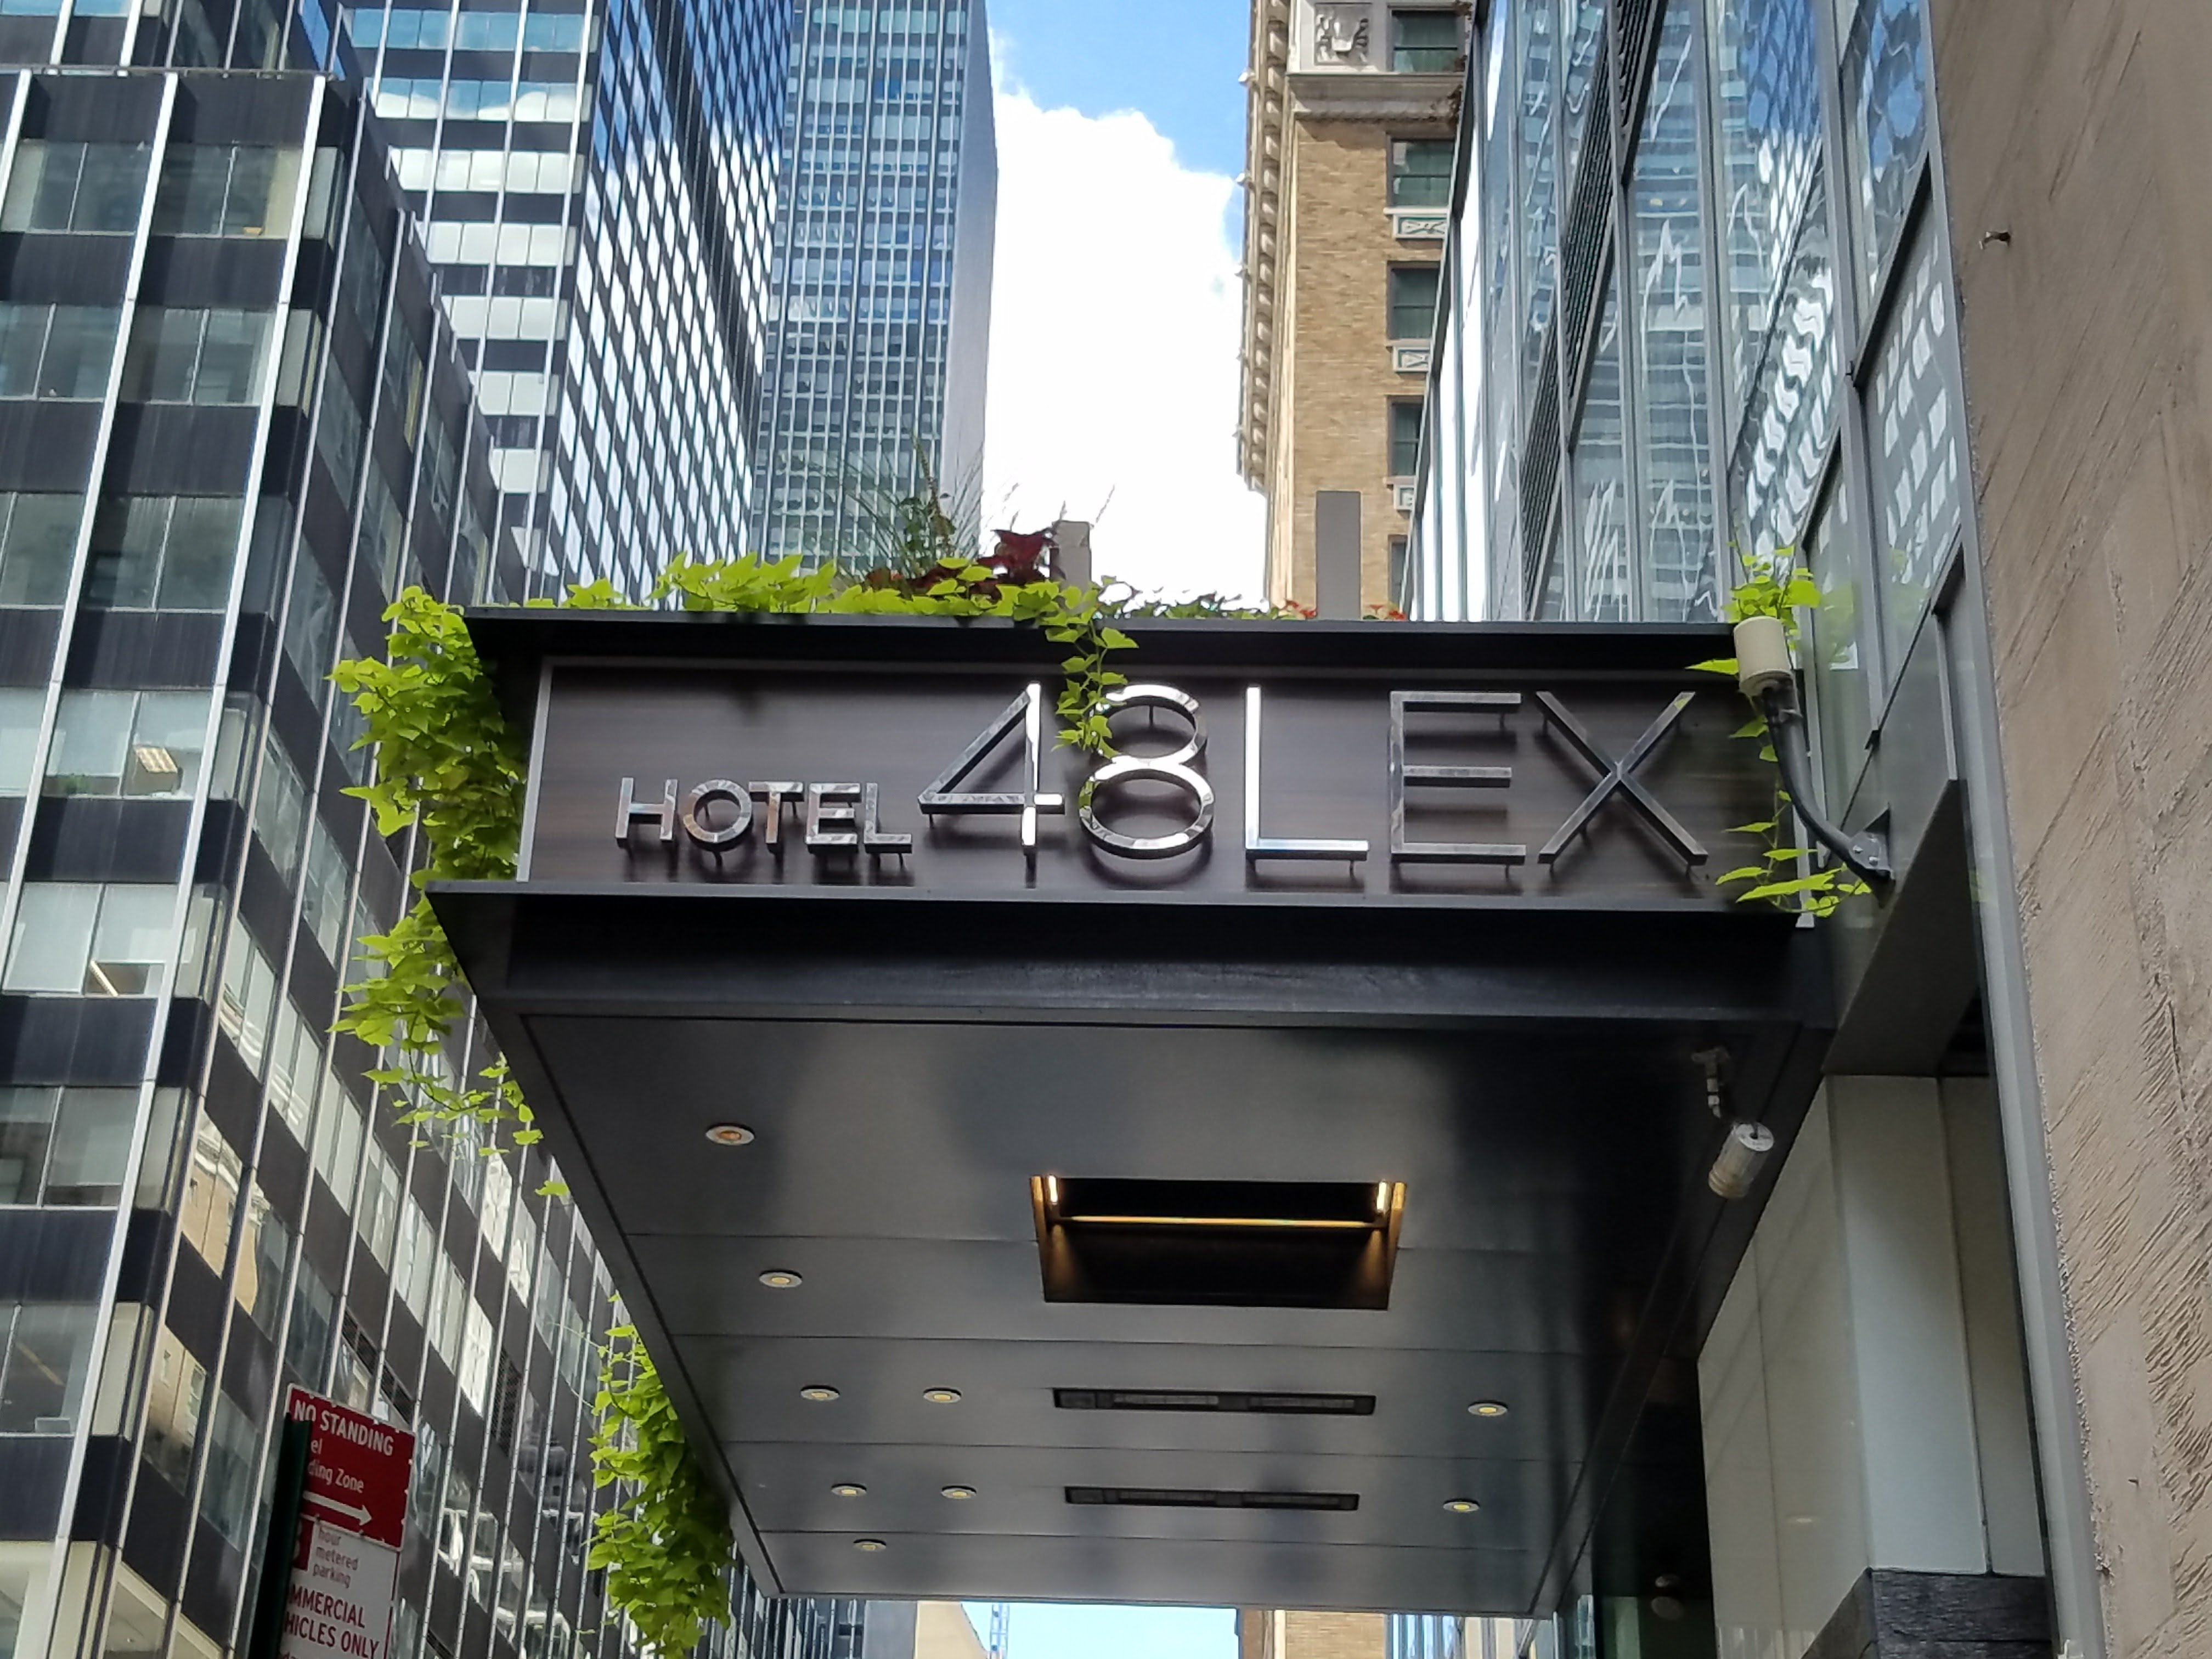 The former Hyatt 48 Lex in Manhattan opened in 2011 but left the Hyatt portfolio four years later, reopening as the independent Hotel 48LEX.